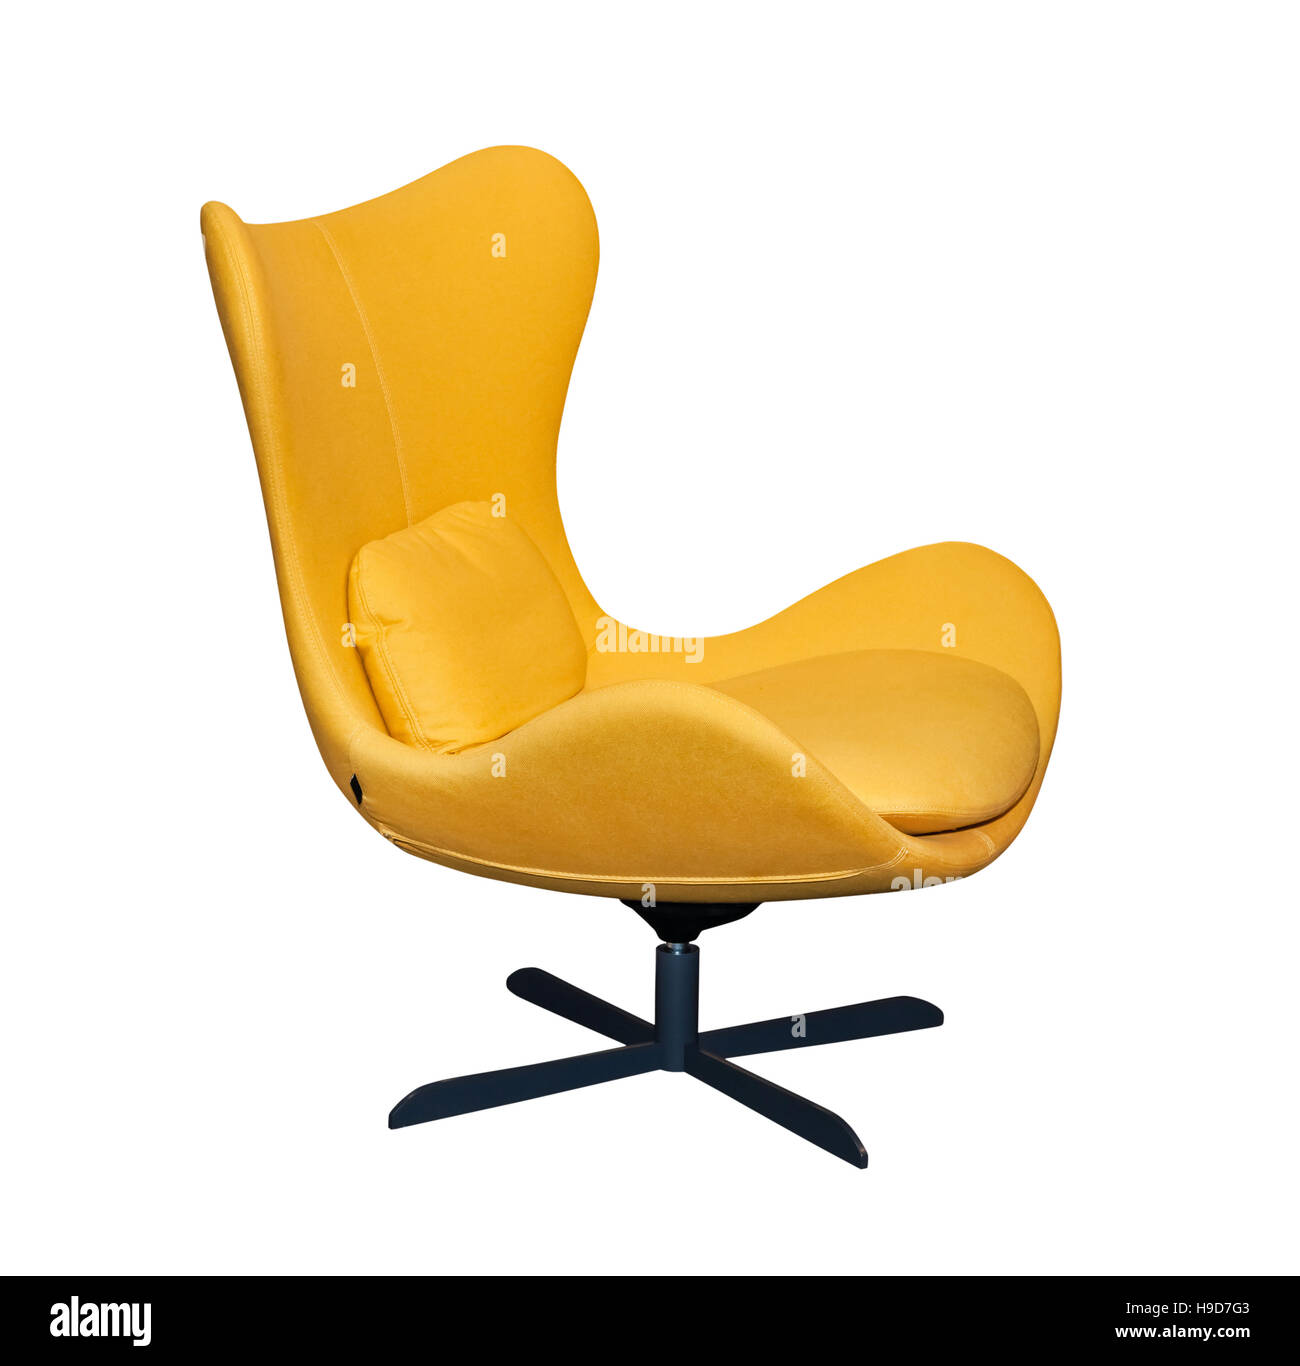 Spinning Chair Spinning Yellow Office Chair Stock Photo 126295795 Alamy